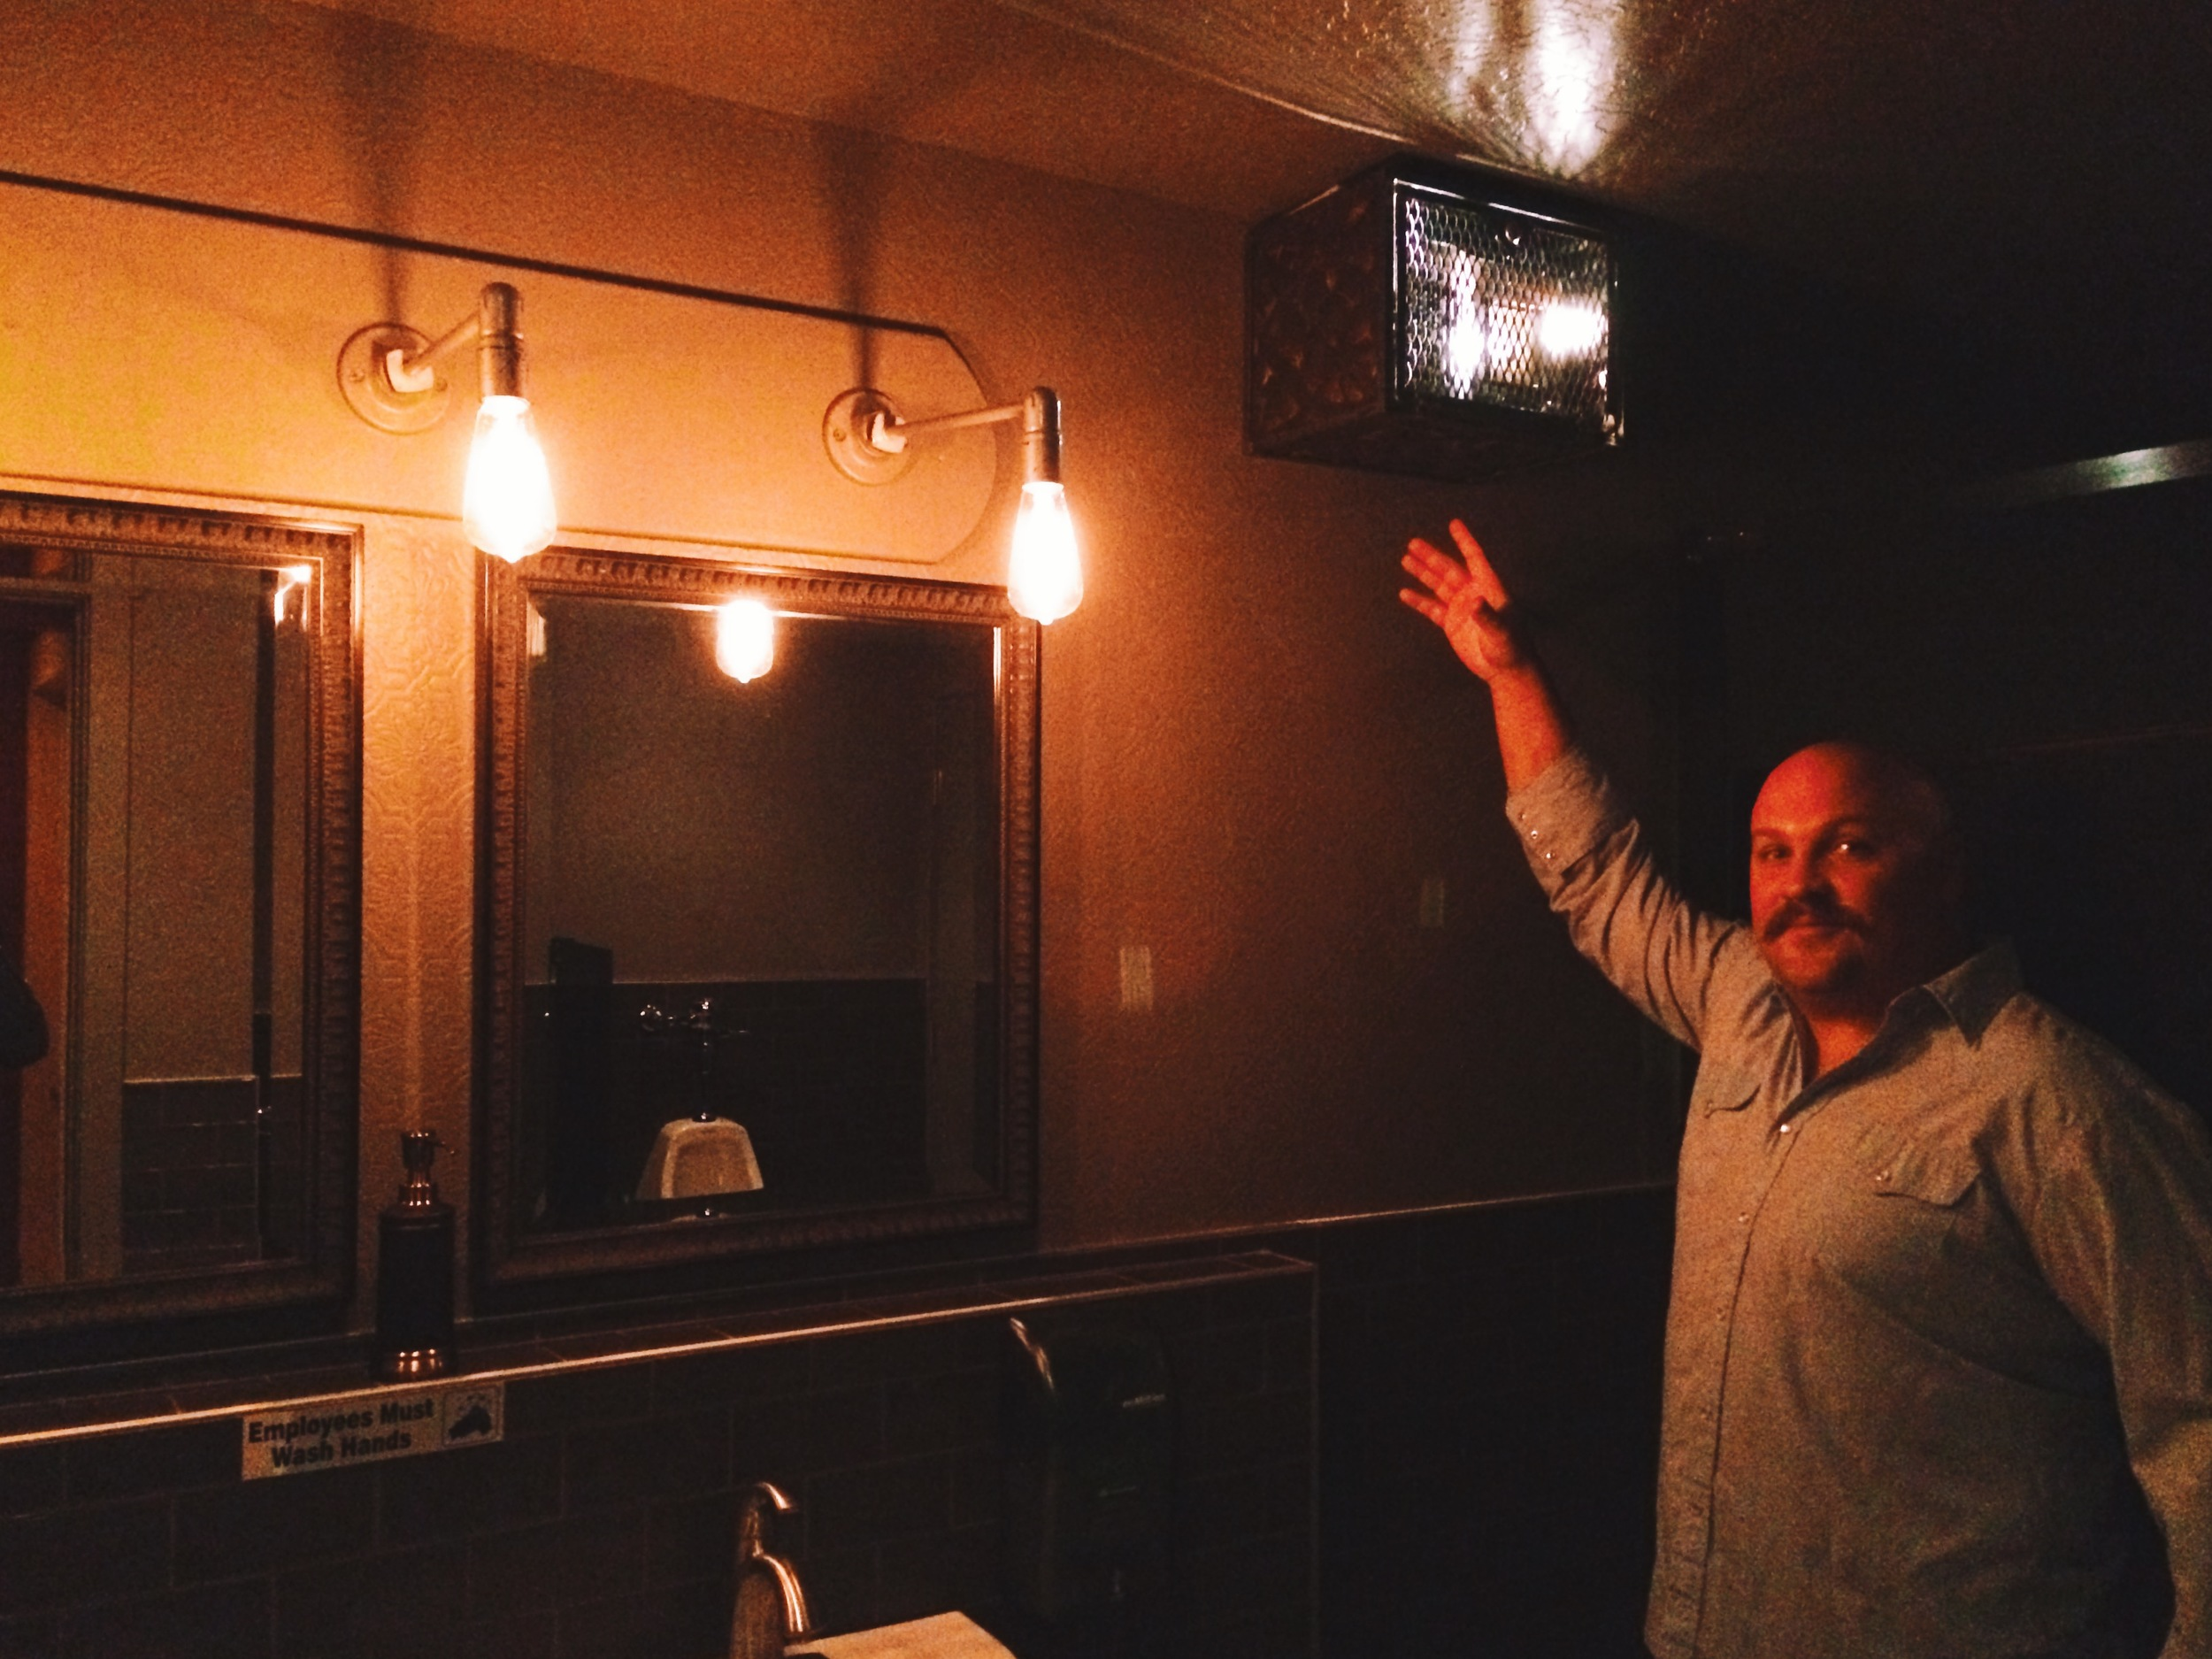 Bathrooms house vintage radio's that play old time shows like The Lone Ranger, curated by Johnny Peppinger.